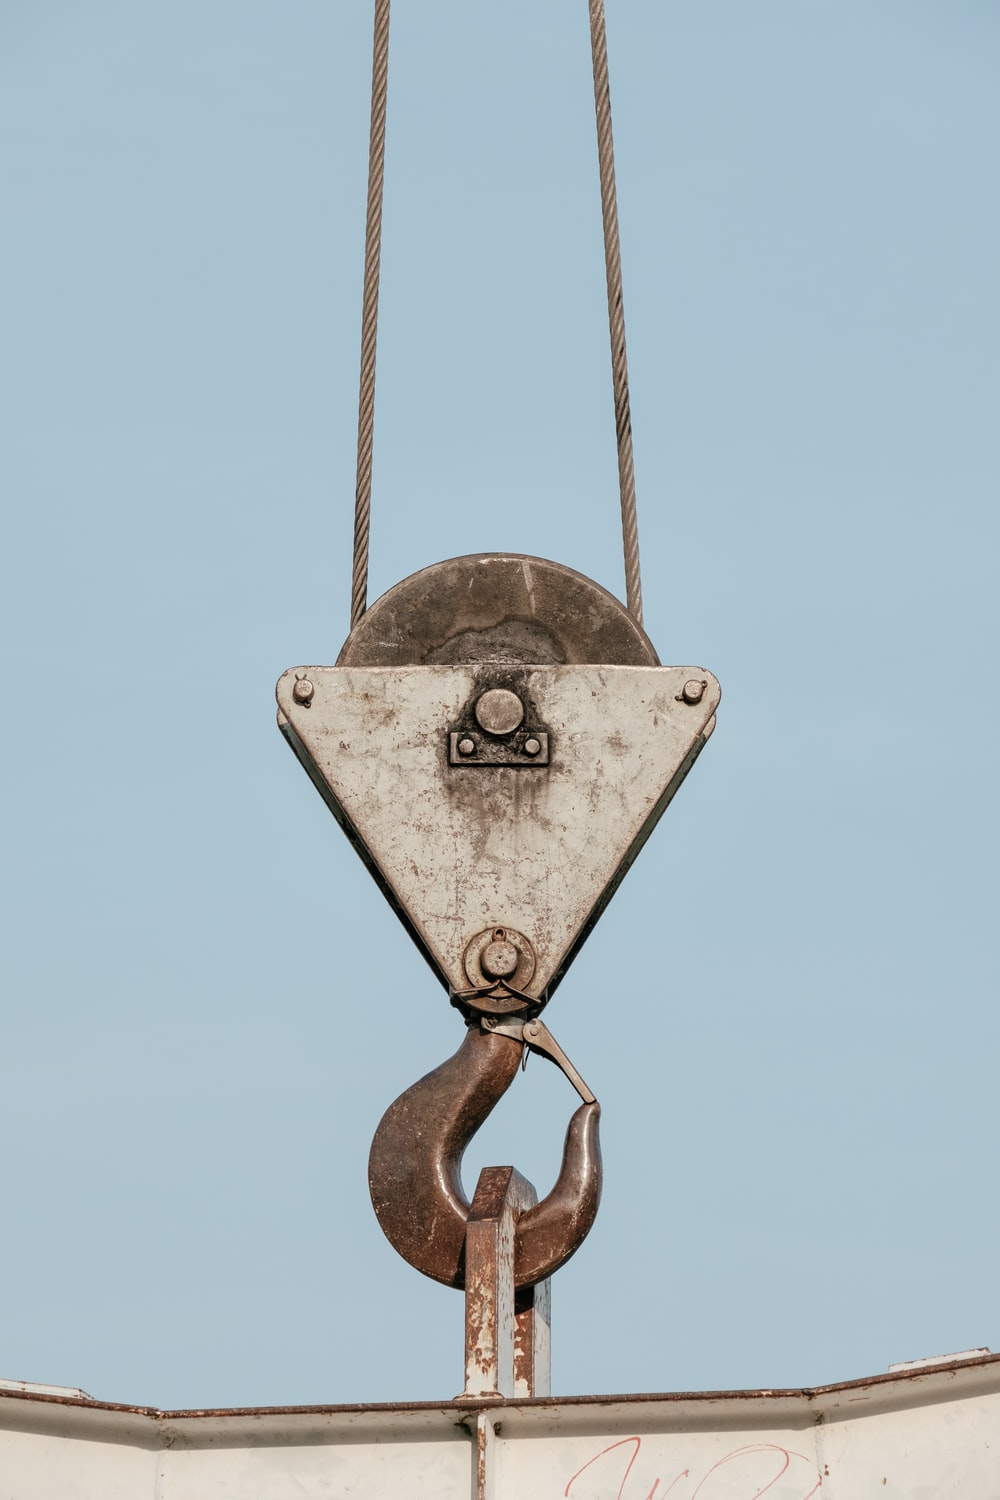 brown steel pulley holding white steel bar